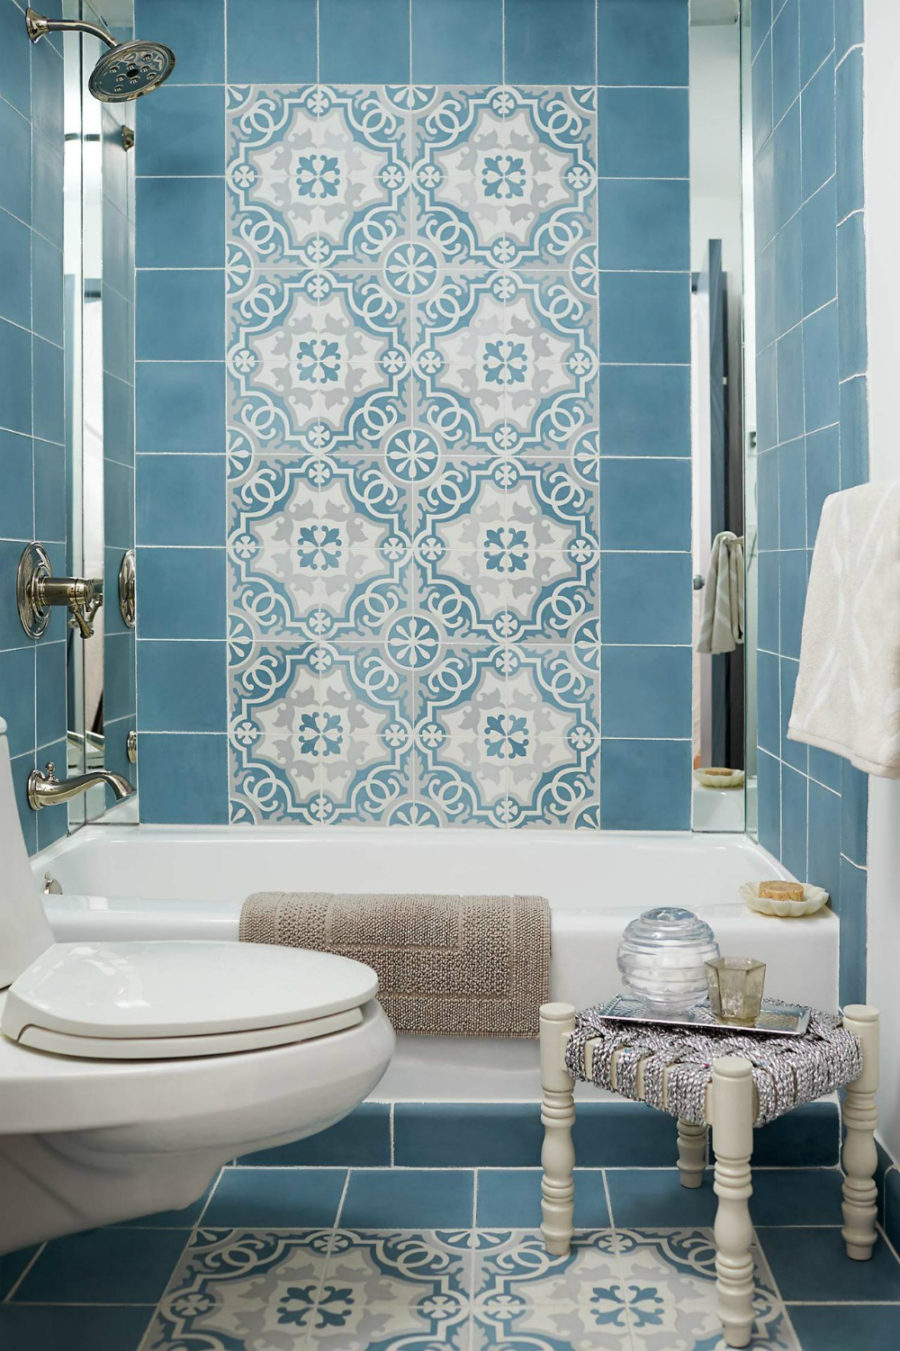 Small bathroom with Moroccan flair